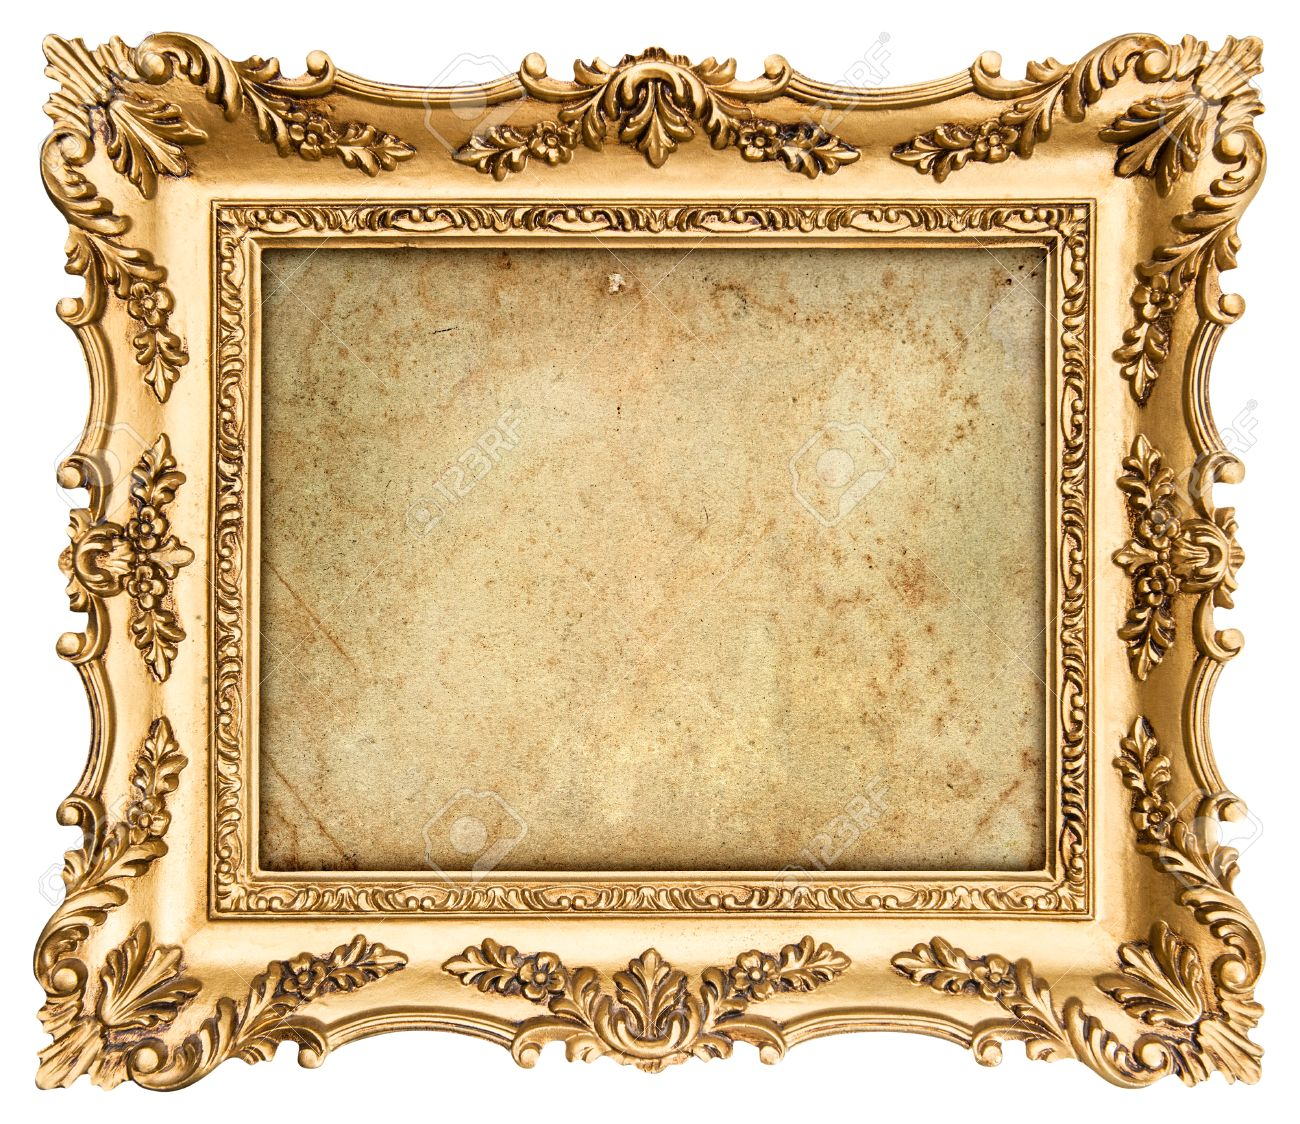 Stock Photo - old golden frame with empty grunge canvas for your picture,  photo, image beautiful vintage background